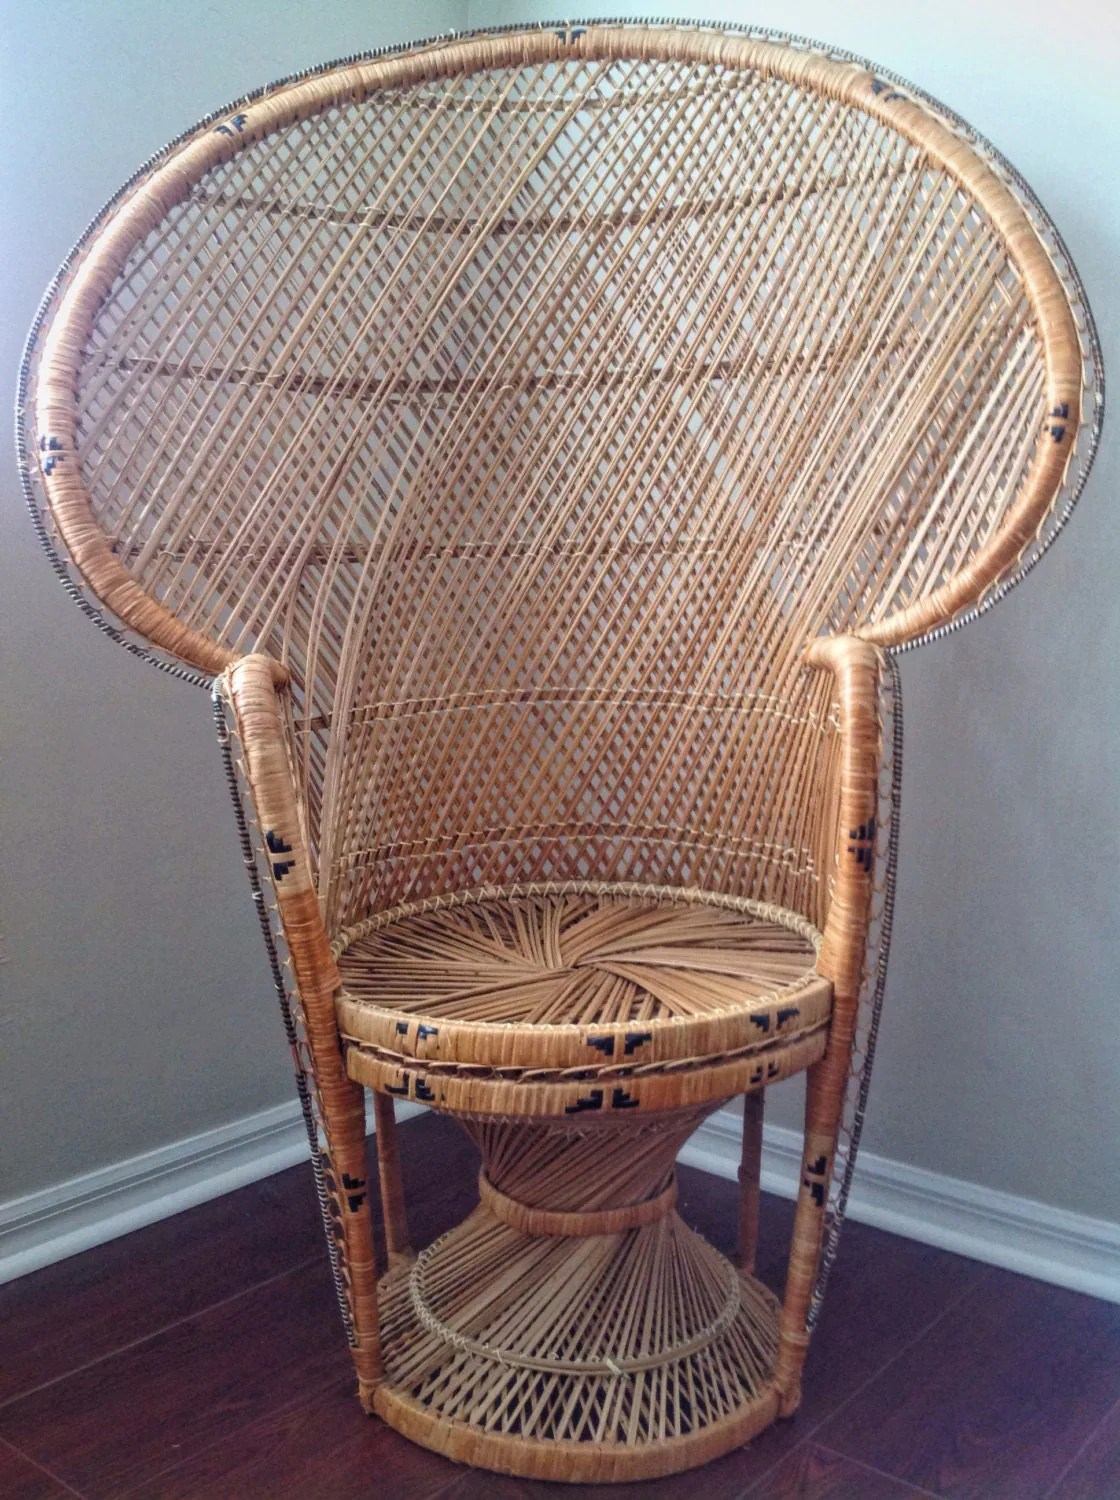 Antique Wicker Chairs Vintage Wicker Rattan Peacock Chair